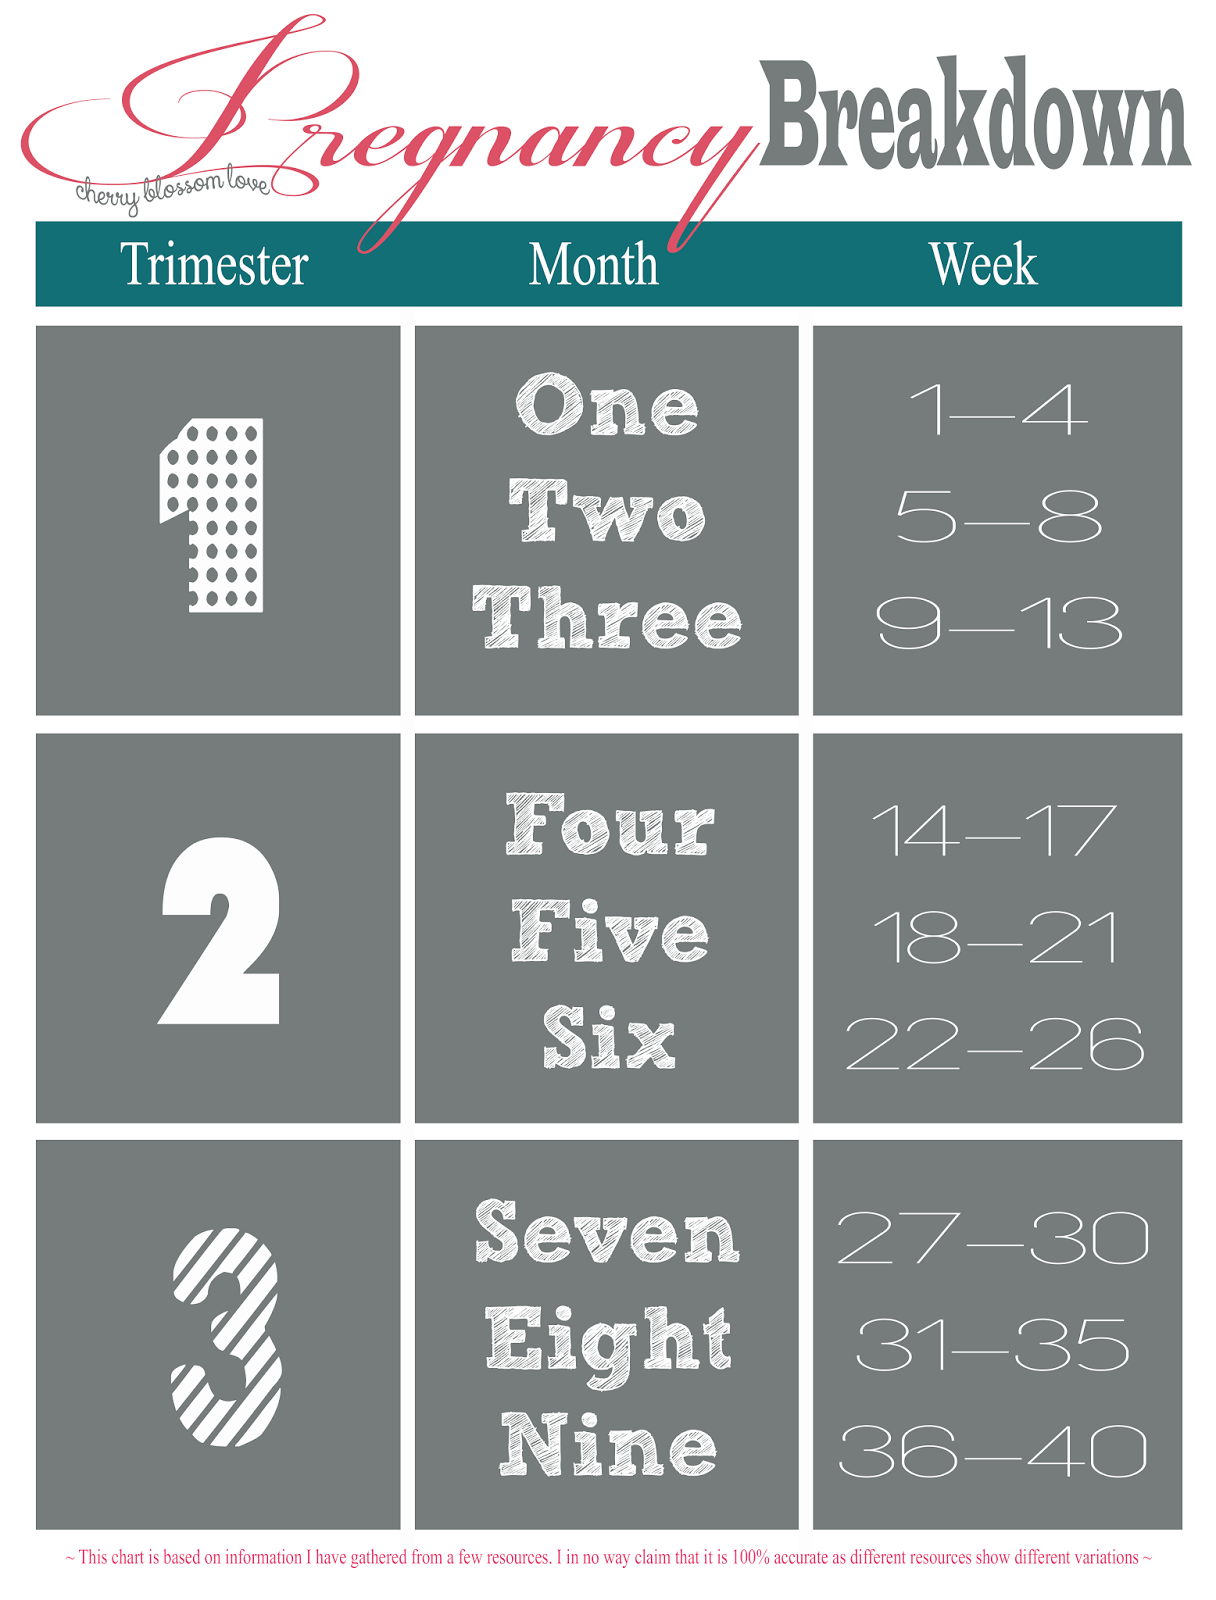 hight resolution of pregnancy breakdown in trimesters months and weeks